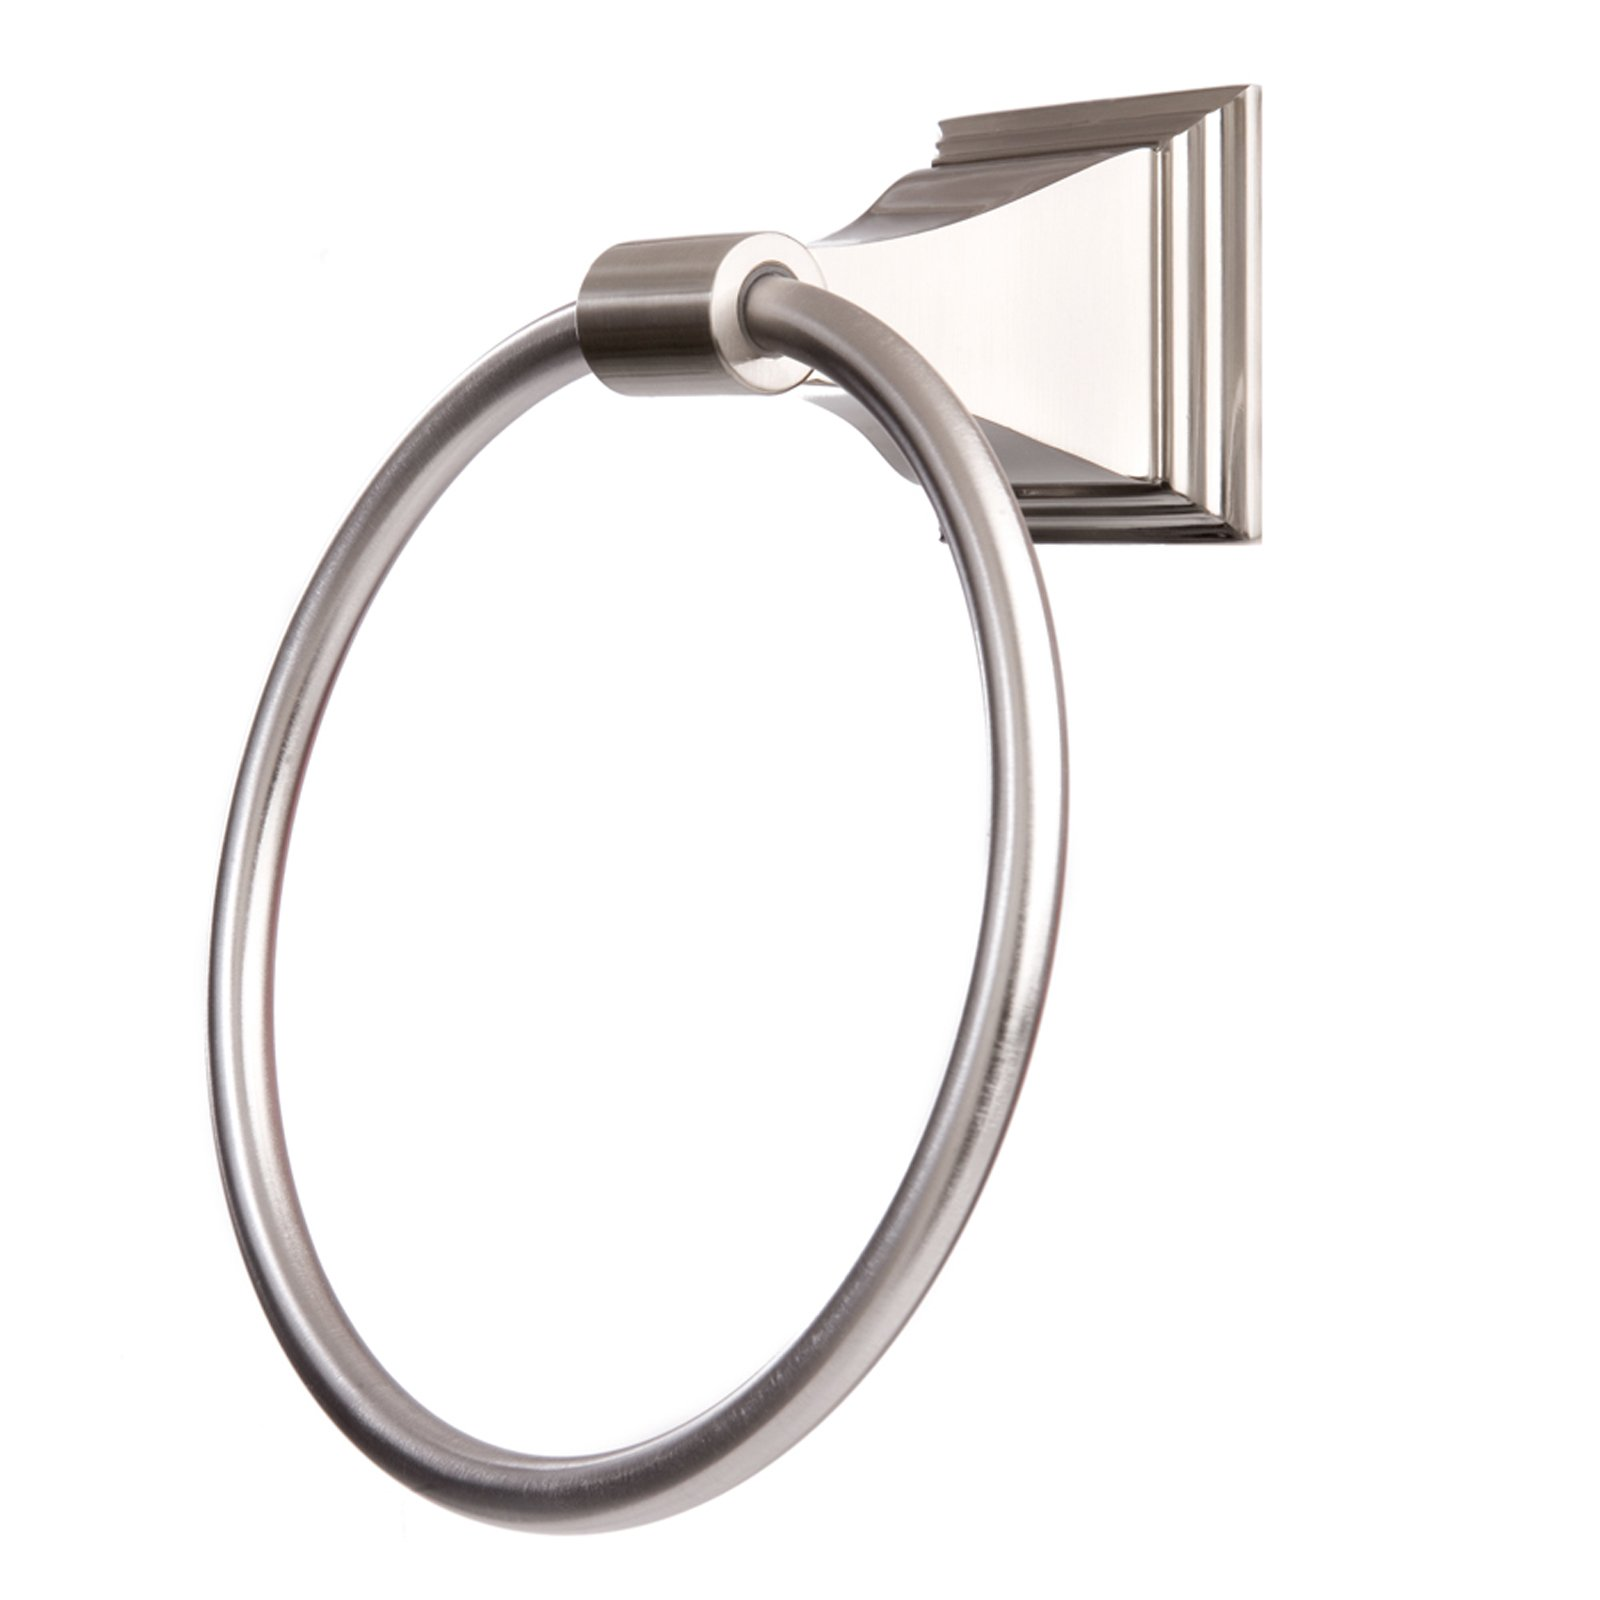 Arista Bath Products Leonard Series Towel Ring, Satin Nickel by Arista Bath Products